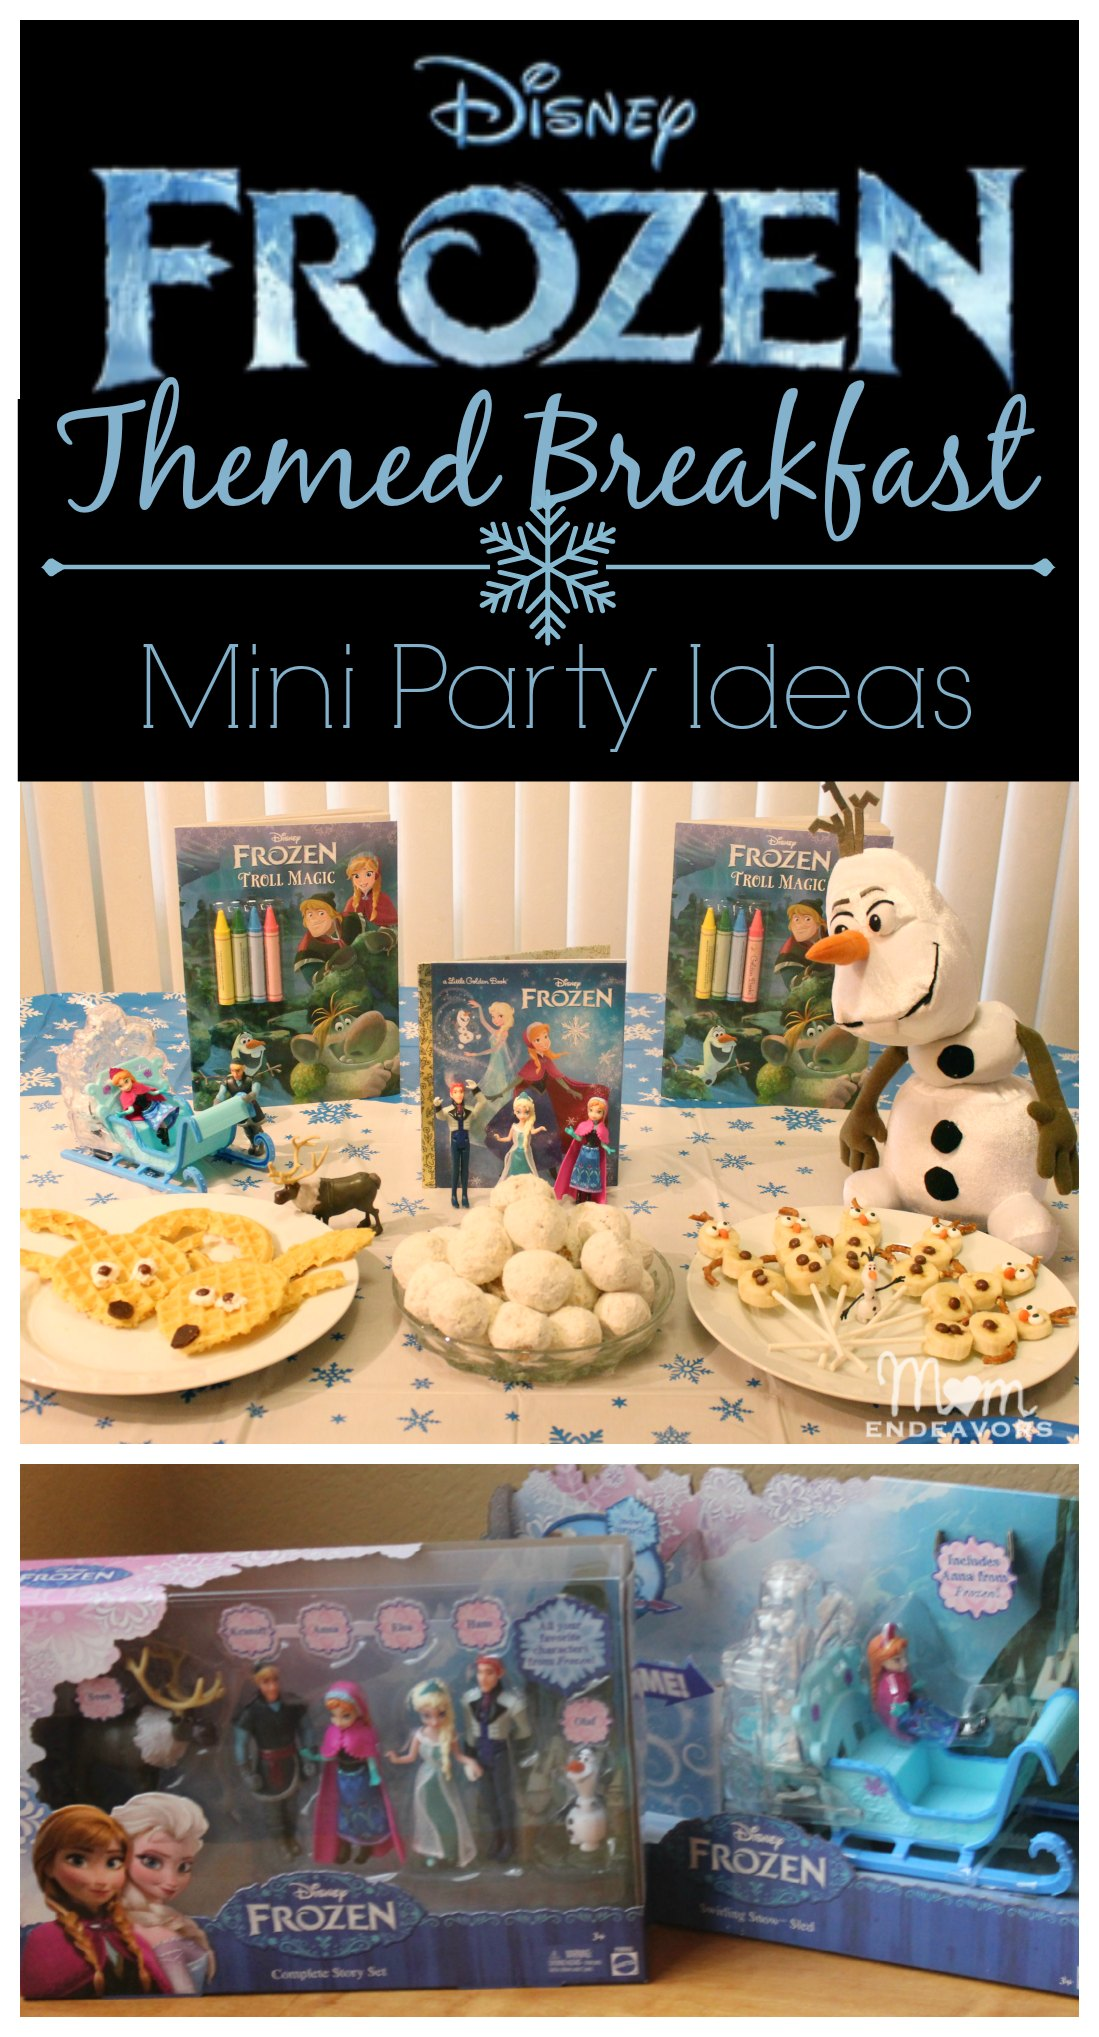 Disney Frozen Themed Breakfast & Mini Party Ideas